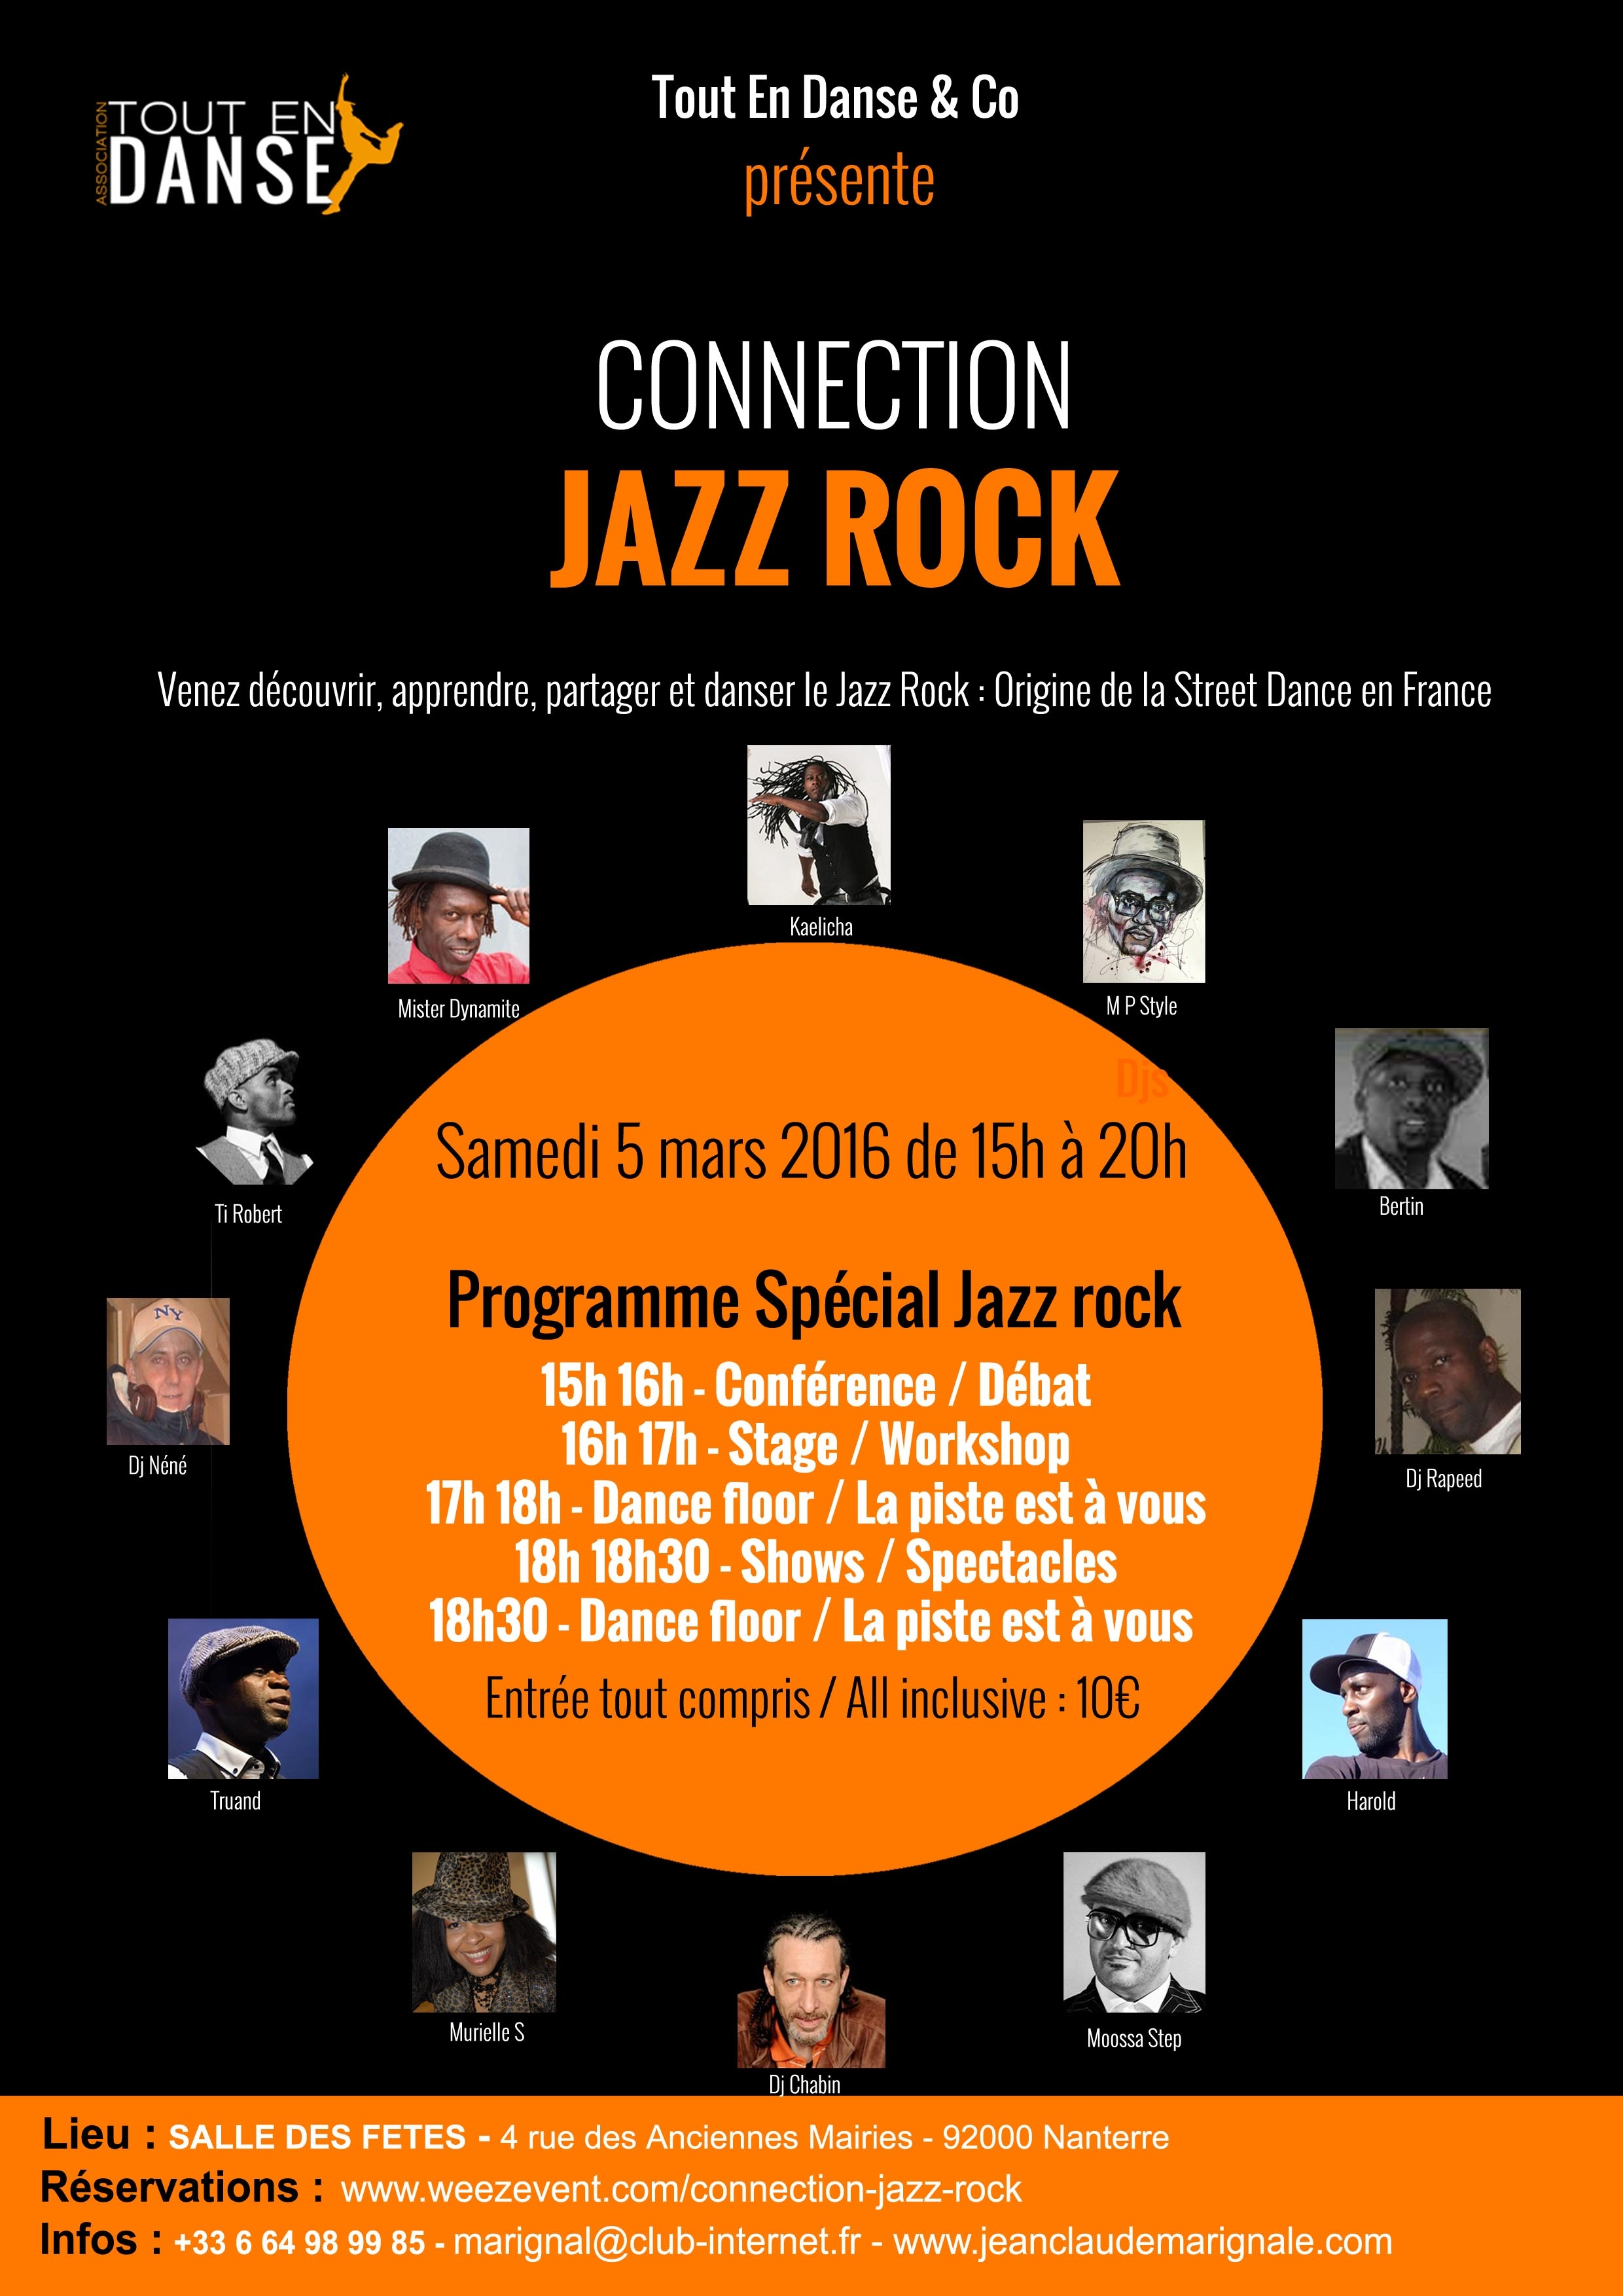 jazz-rock-cnnection-programme-1.jpg